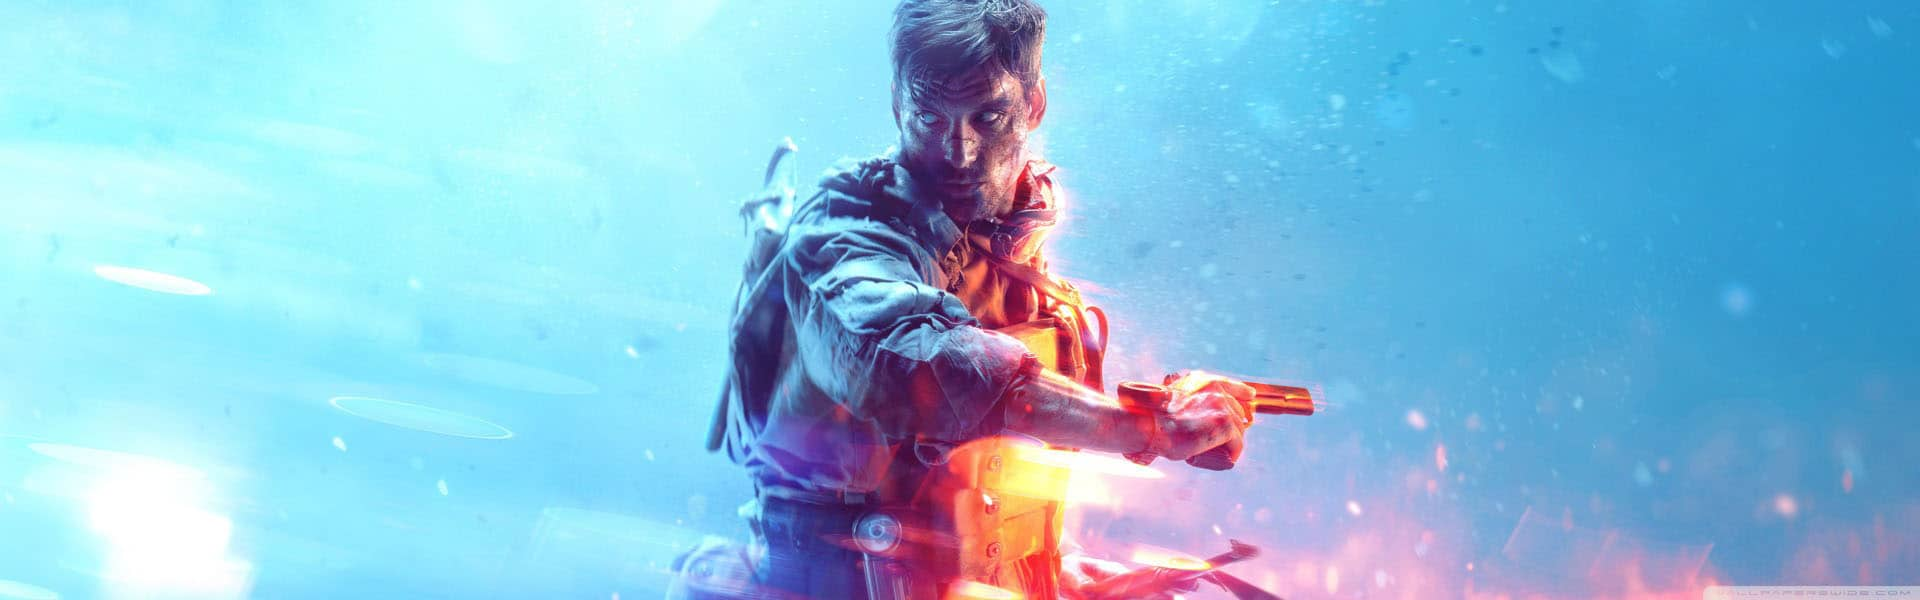 Best Settings For Battlefield 5 – Boost FPS, Increase Performance